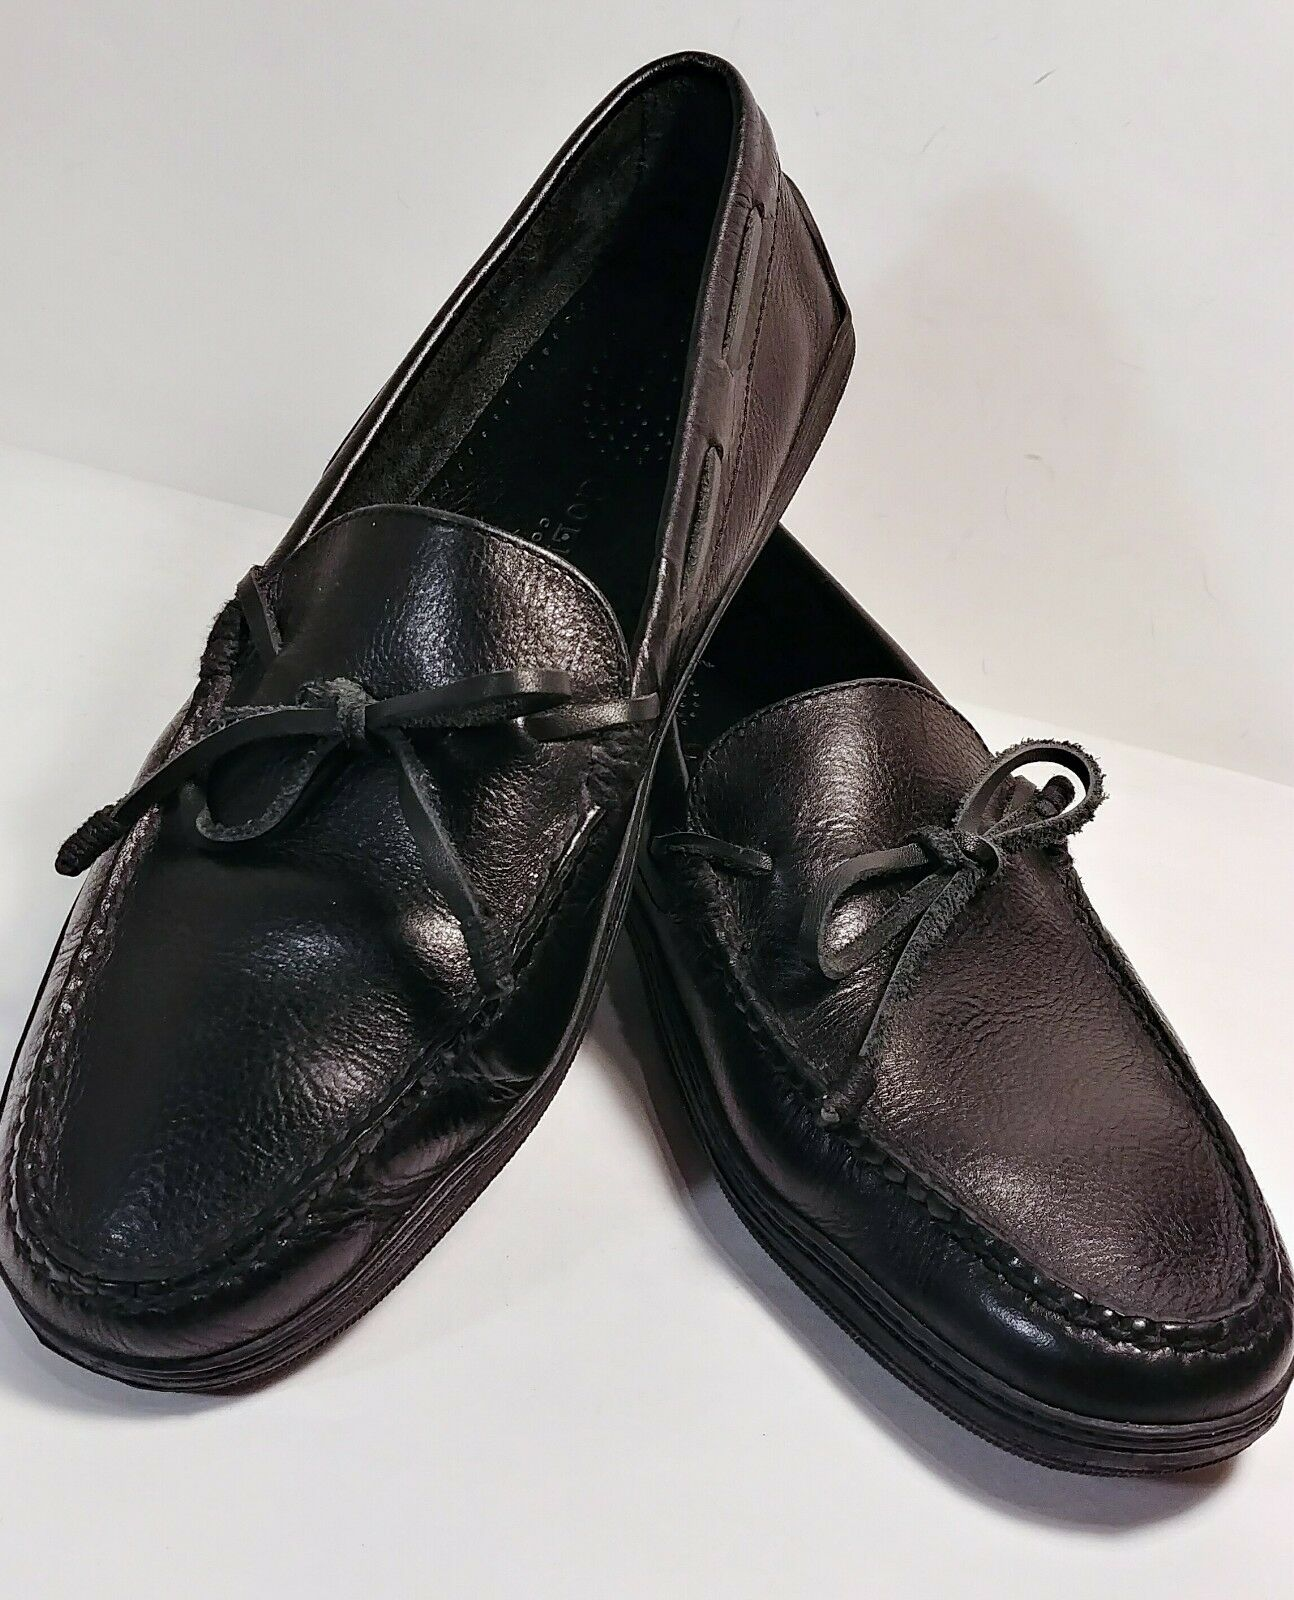 Cole Haan Black Leather Slip-On Moccasin Driving Loafers Men's Size 10 M *XLNT*